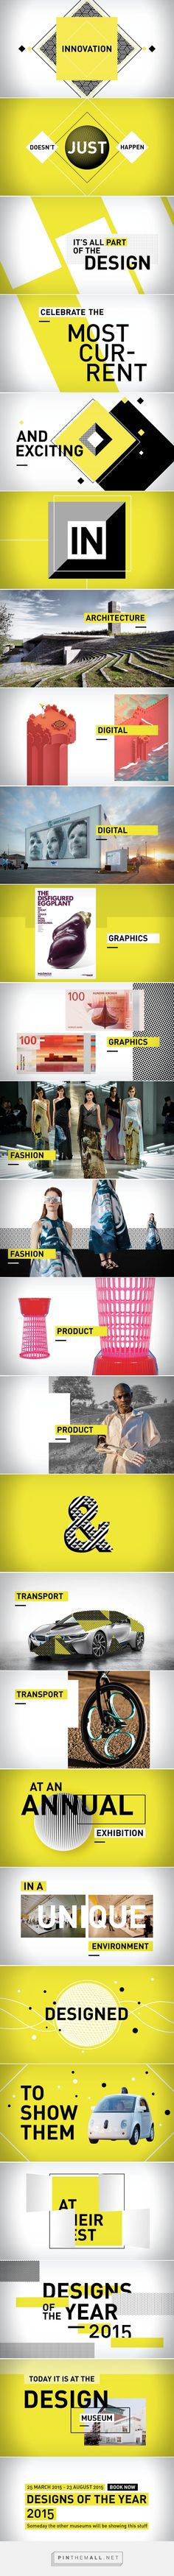 London's DESIGN MUSEUM | Designs of the Year 2015 promo Roxanne Silverwood